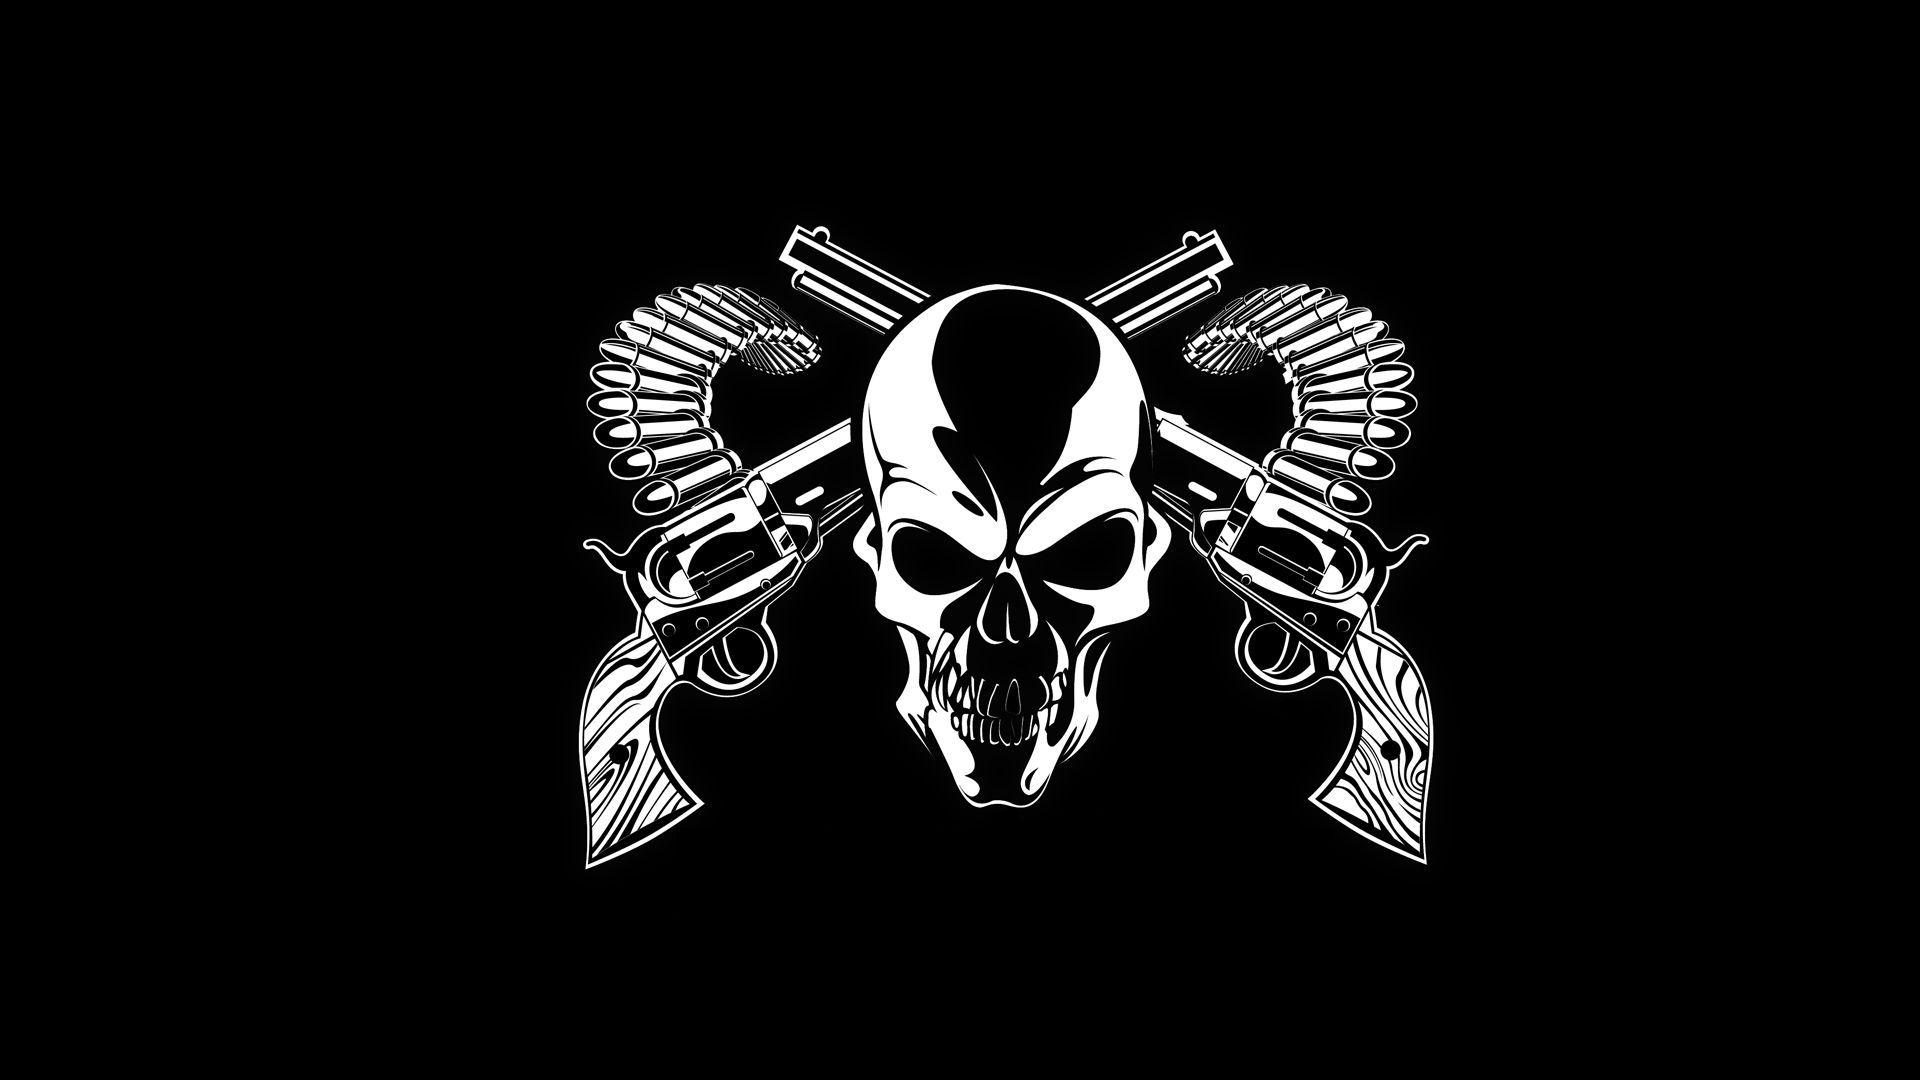 Gangster Skull Wallpapers Hd Wallpaper Cave